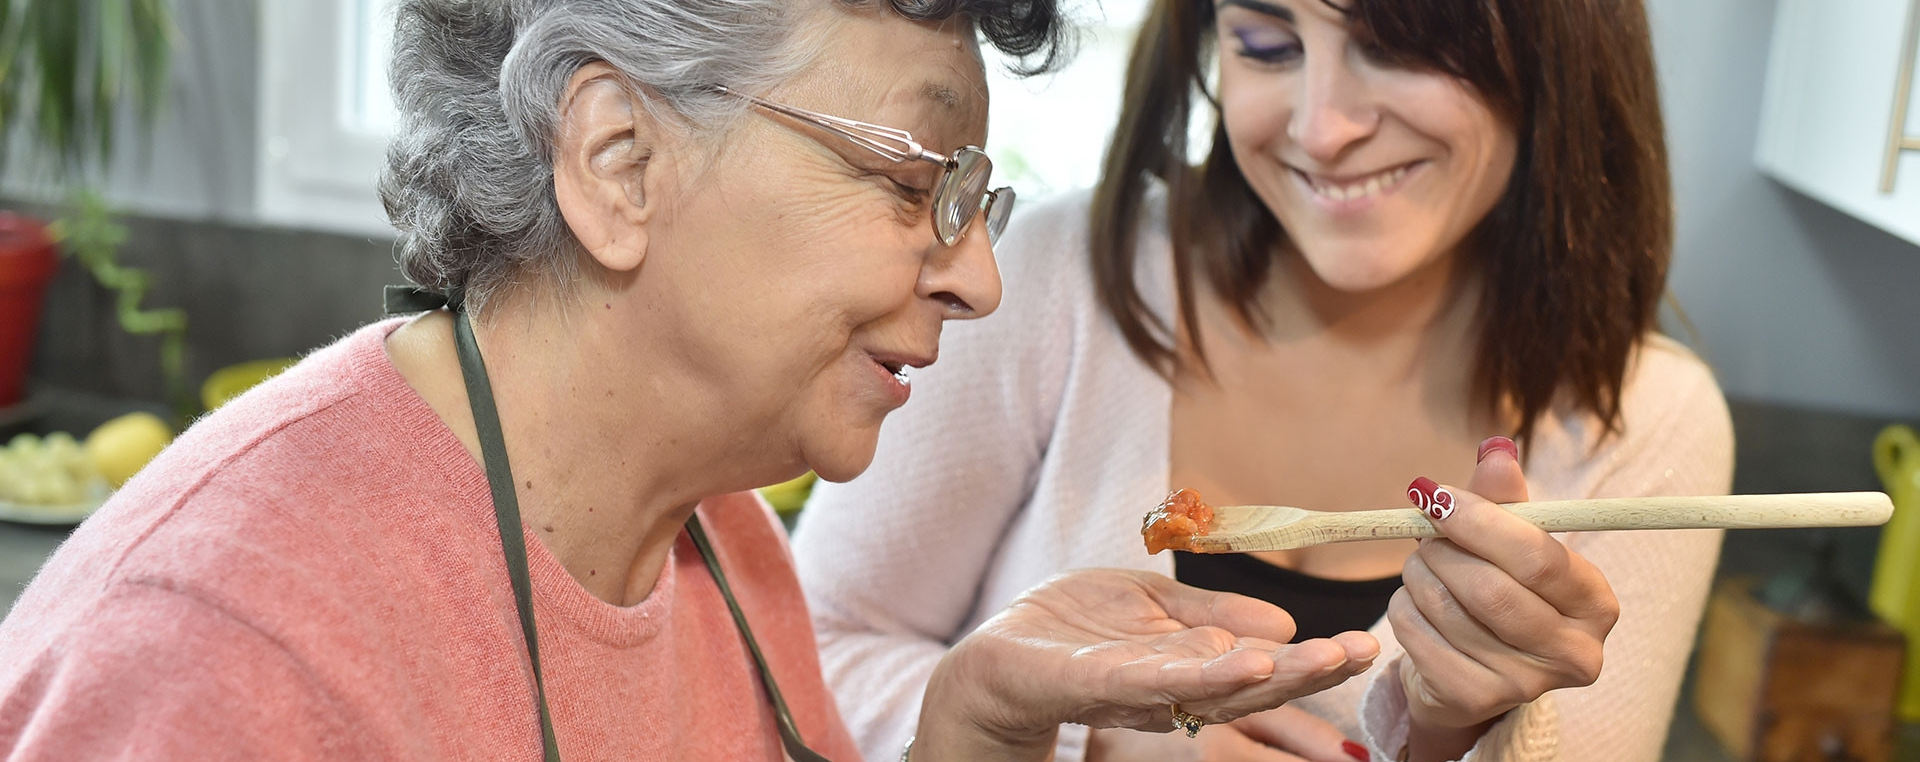 Independent supported living service for the elderly - NCCN